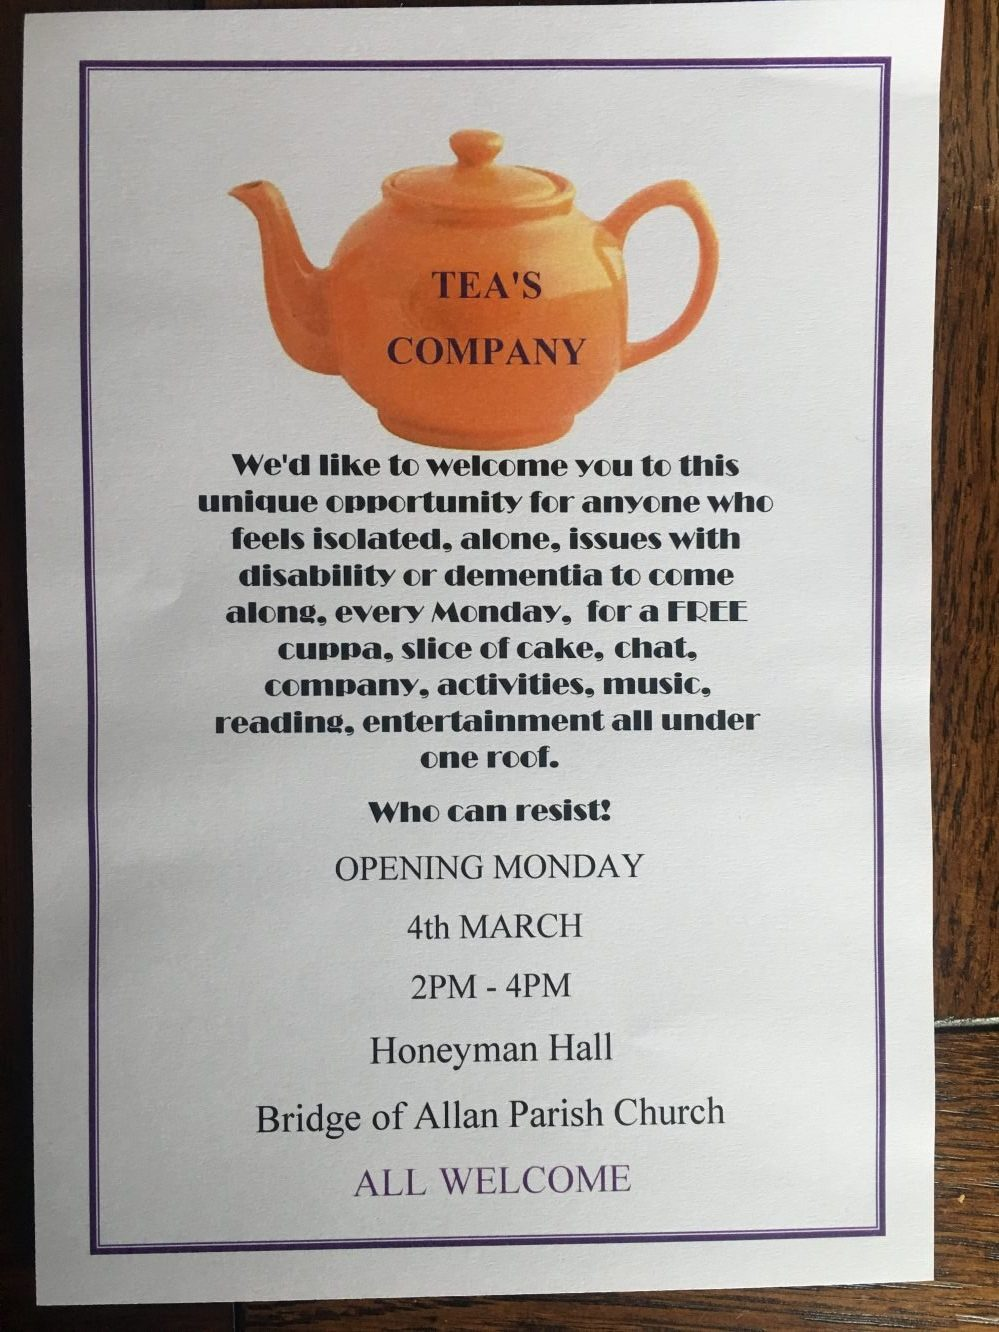 The Teas Company event opens on Monday 4 March at Honeyman Hall, Bridge of Allan Parish Church.